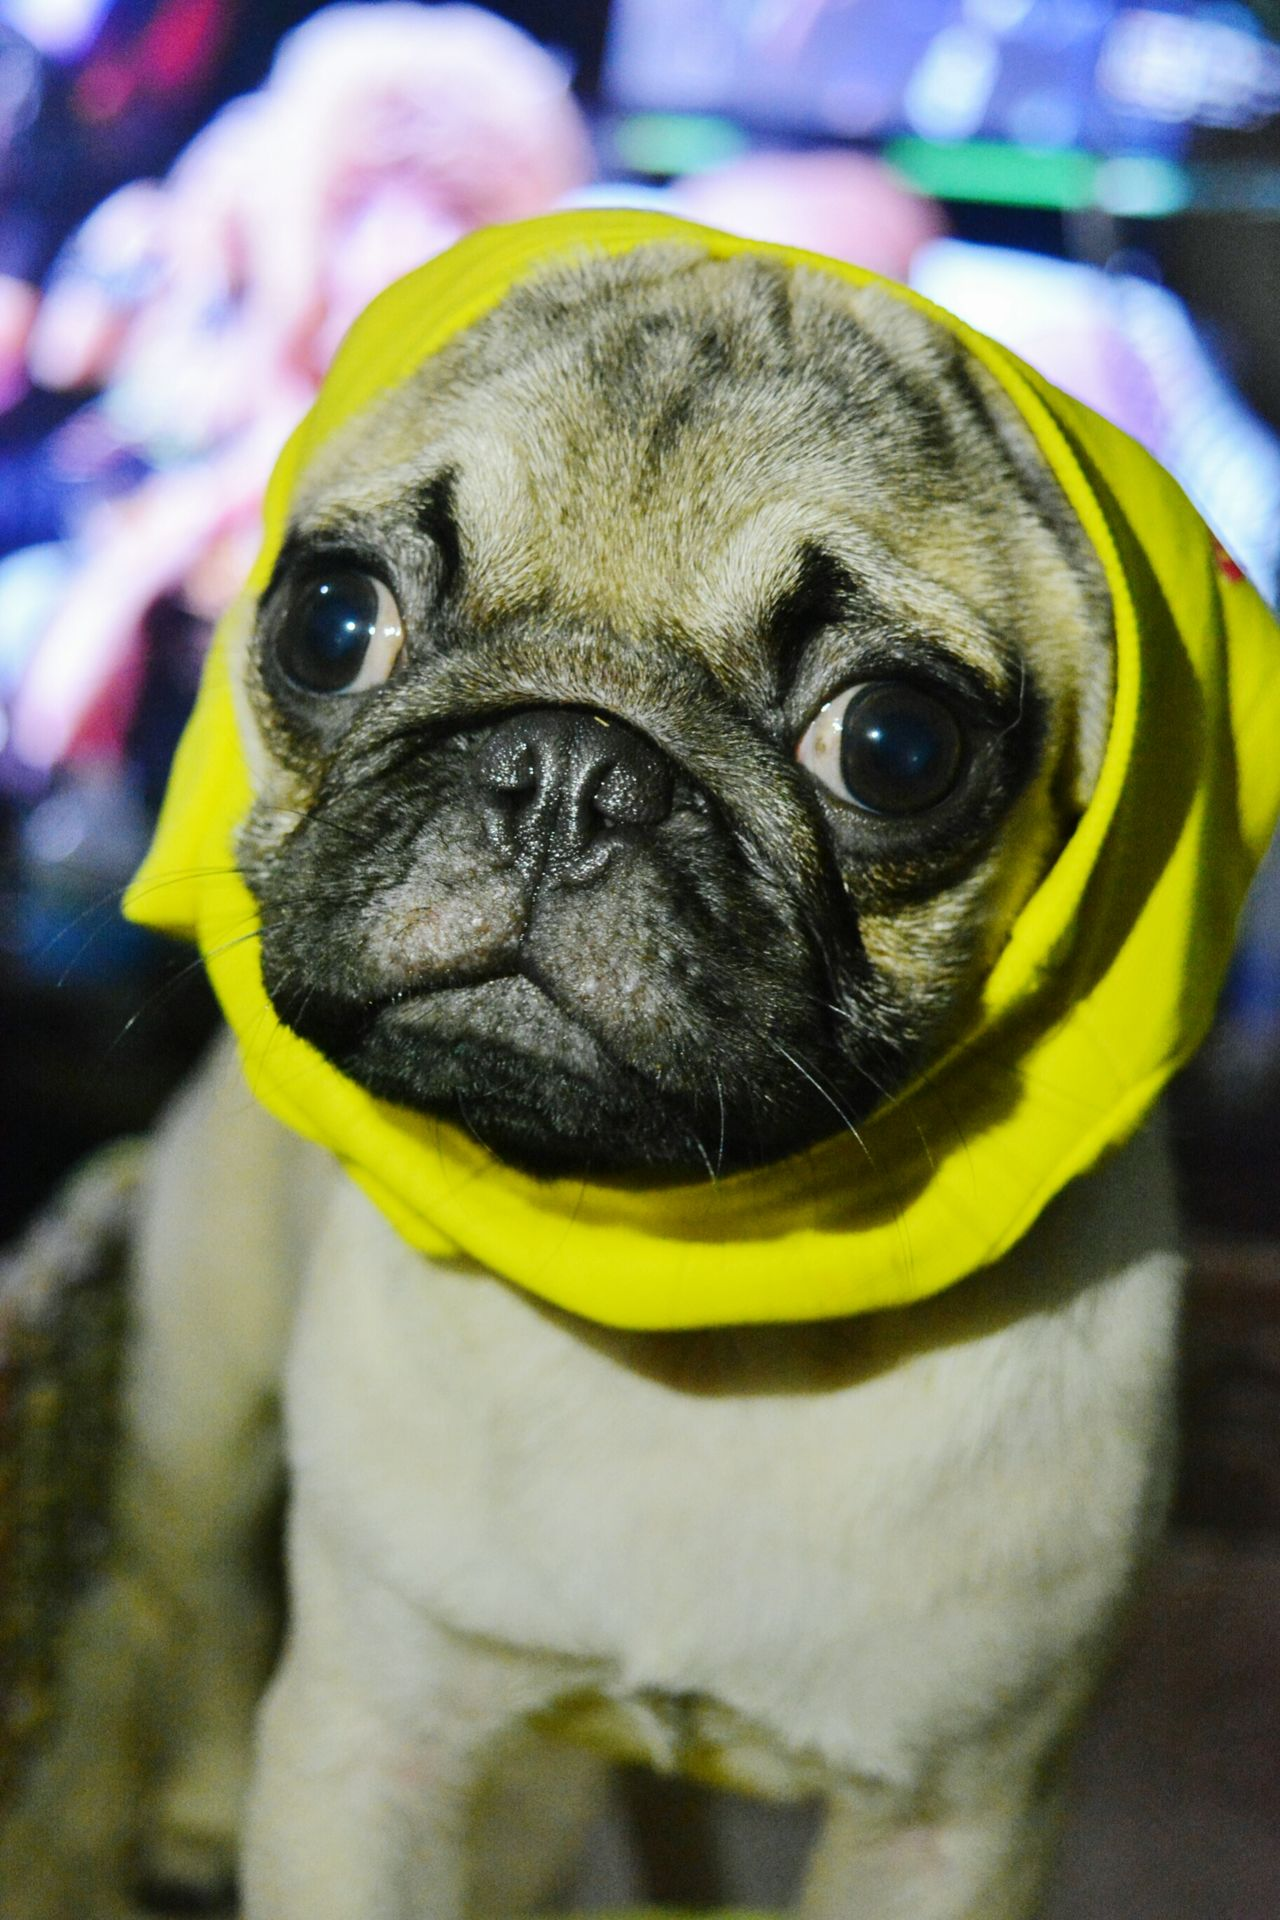 Yellow Animal Themes One Animal Close-up Looking At Camera Portrait Bird No People Indoors  Day Mammal EyeEm Phillipines Eyeemphotography Eyeem Philippines Puglover Pugsofinstagram Puglove  Pug Life ❤ Pug Time Pug Domestic Animals Studio Shot Dog Pets Eyeem Photography